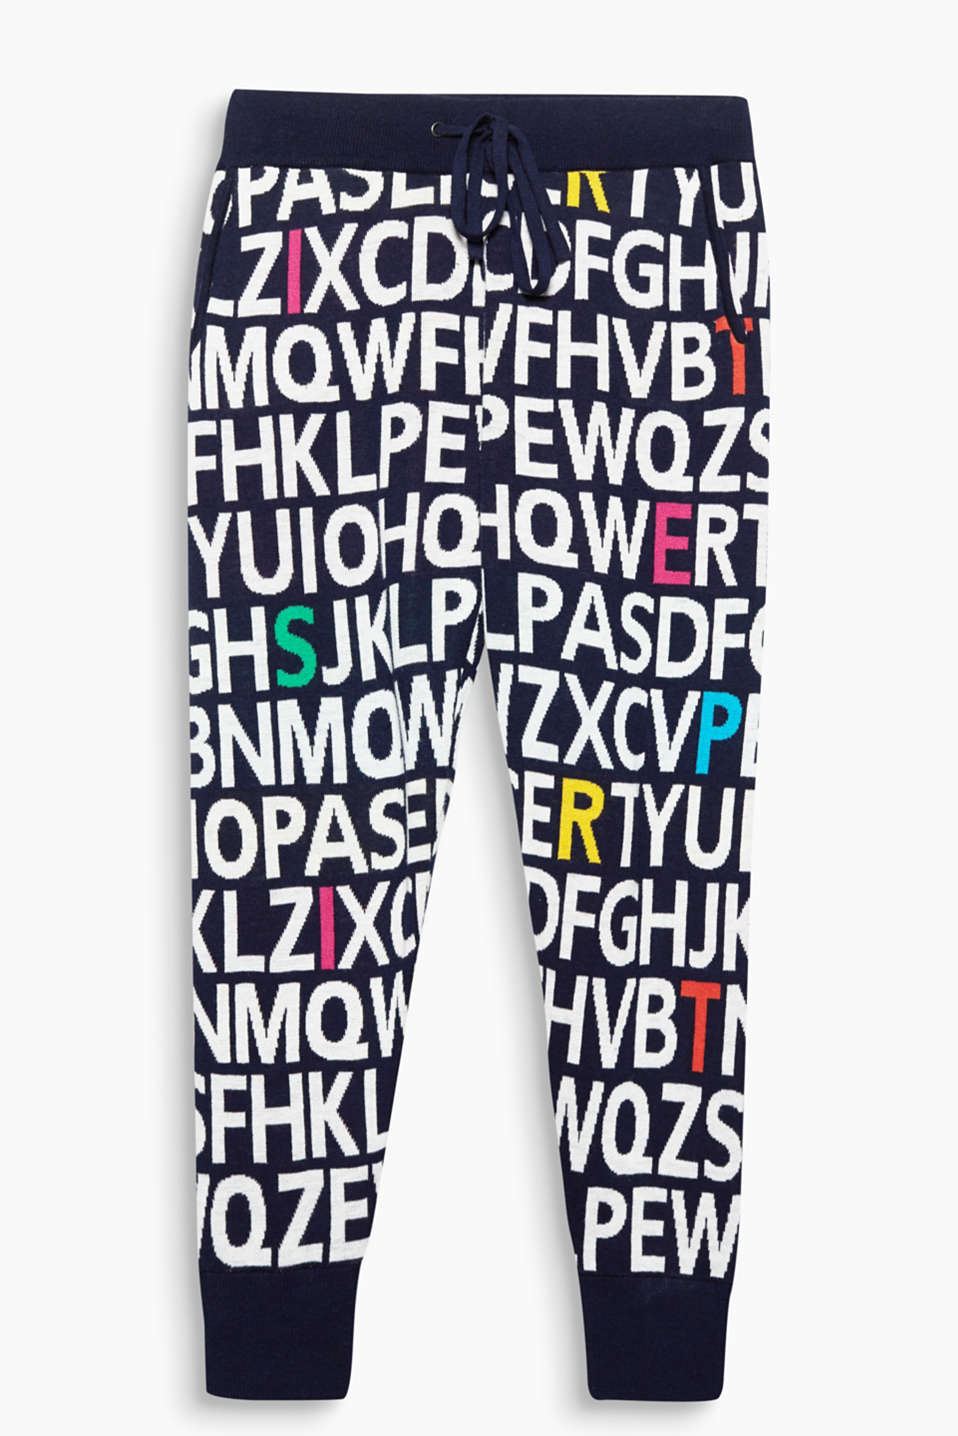 Feel good, look good, do good - tracksuit bottoms made of double-faced yarn with intarsia letters